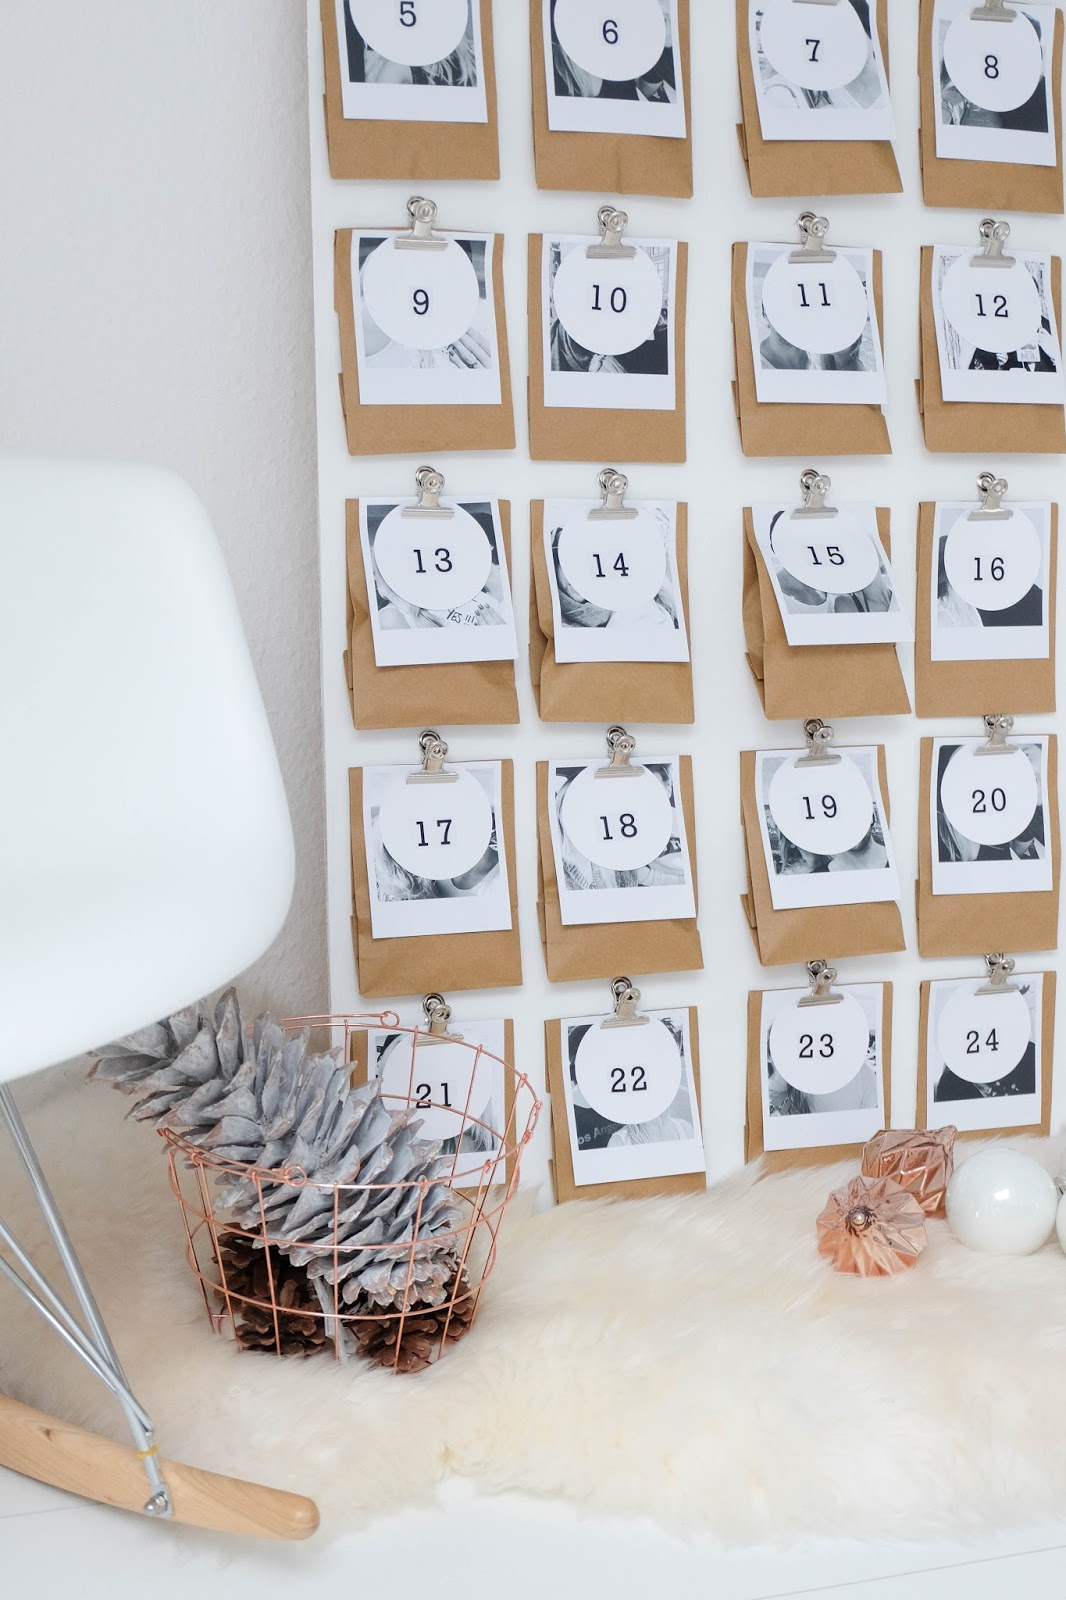 diy adventskalender mit fotos victoria 39 s little secrets. Black Bedroom Furniture Sets. Home Design Ideas